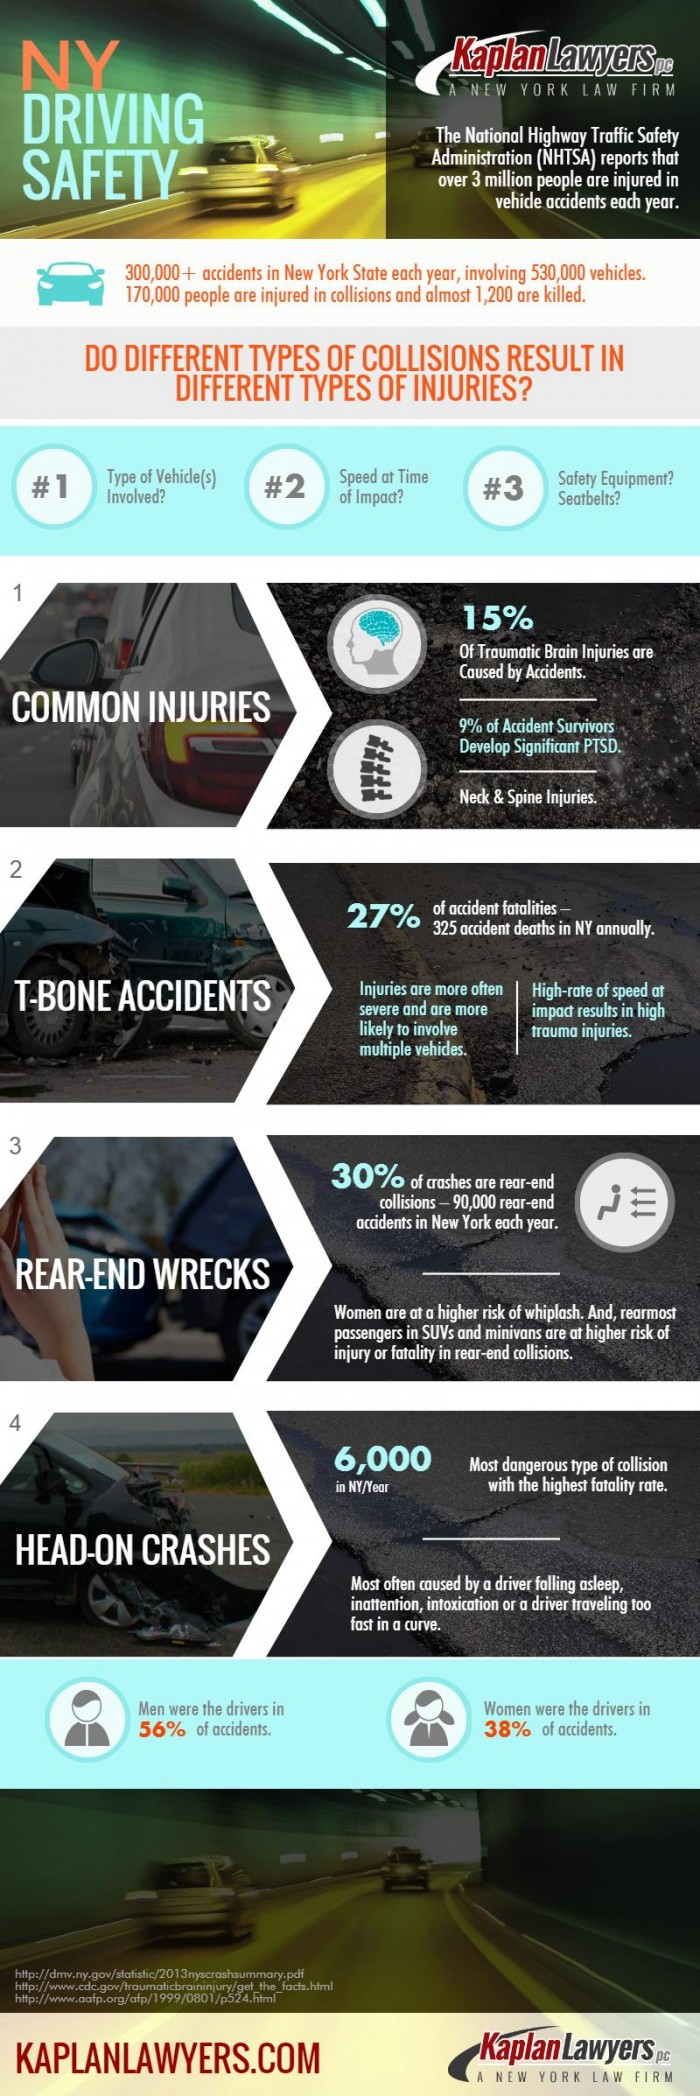 Your Guide To New York Driving Safety Daily Infographic Car Accident Injuries Driving Safety Safety Infographic